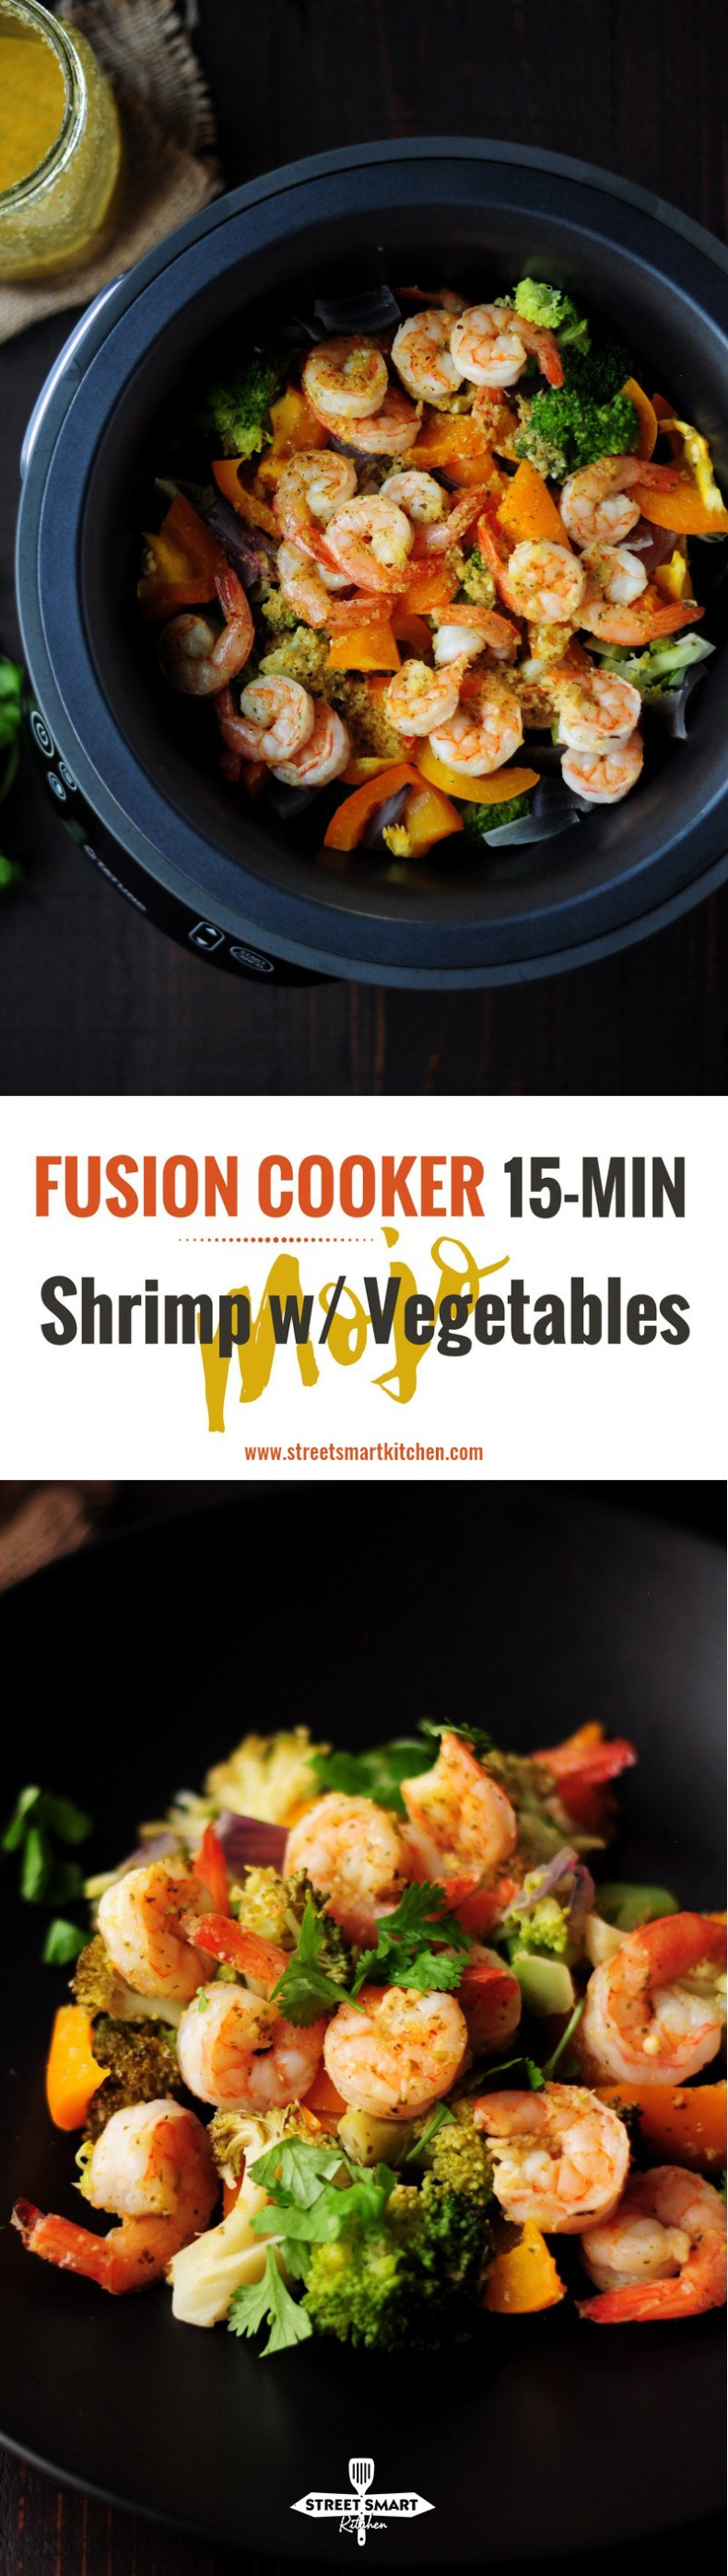 Fusion Cooker 15-Min Mojo Shrimp with Vegetables (Stove Method Recipe Included)